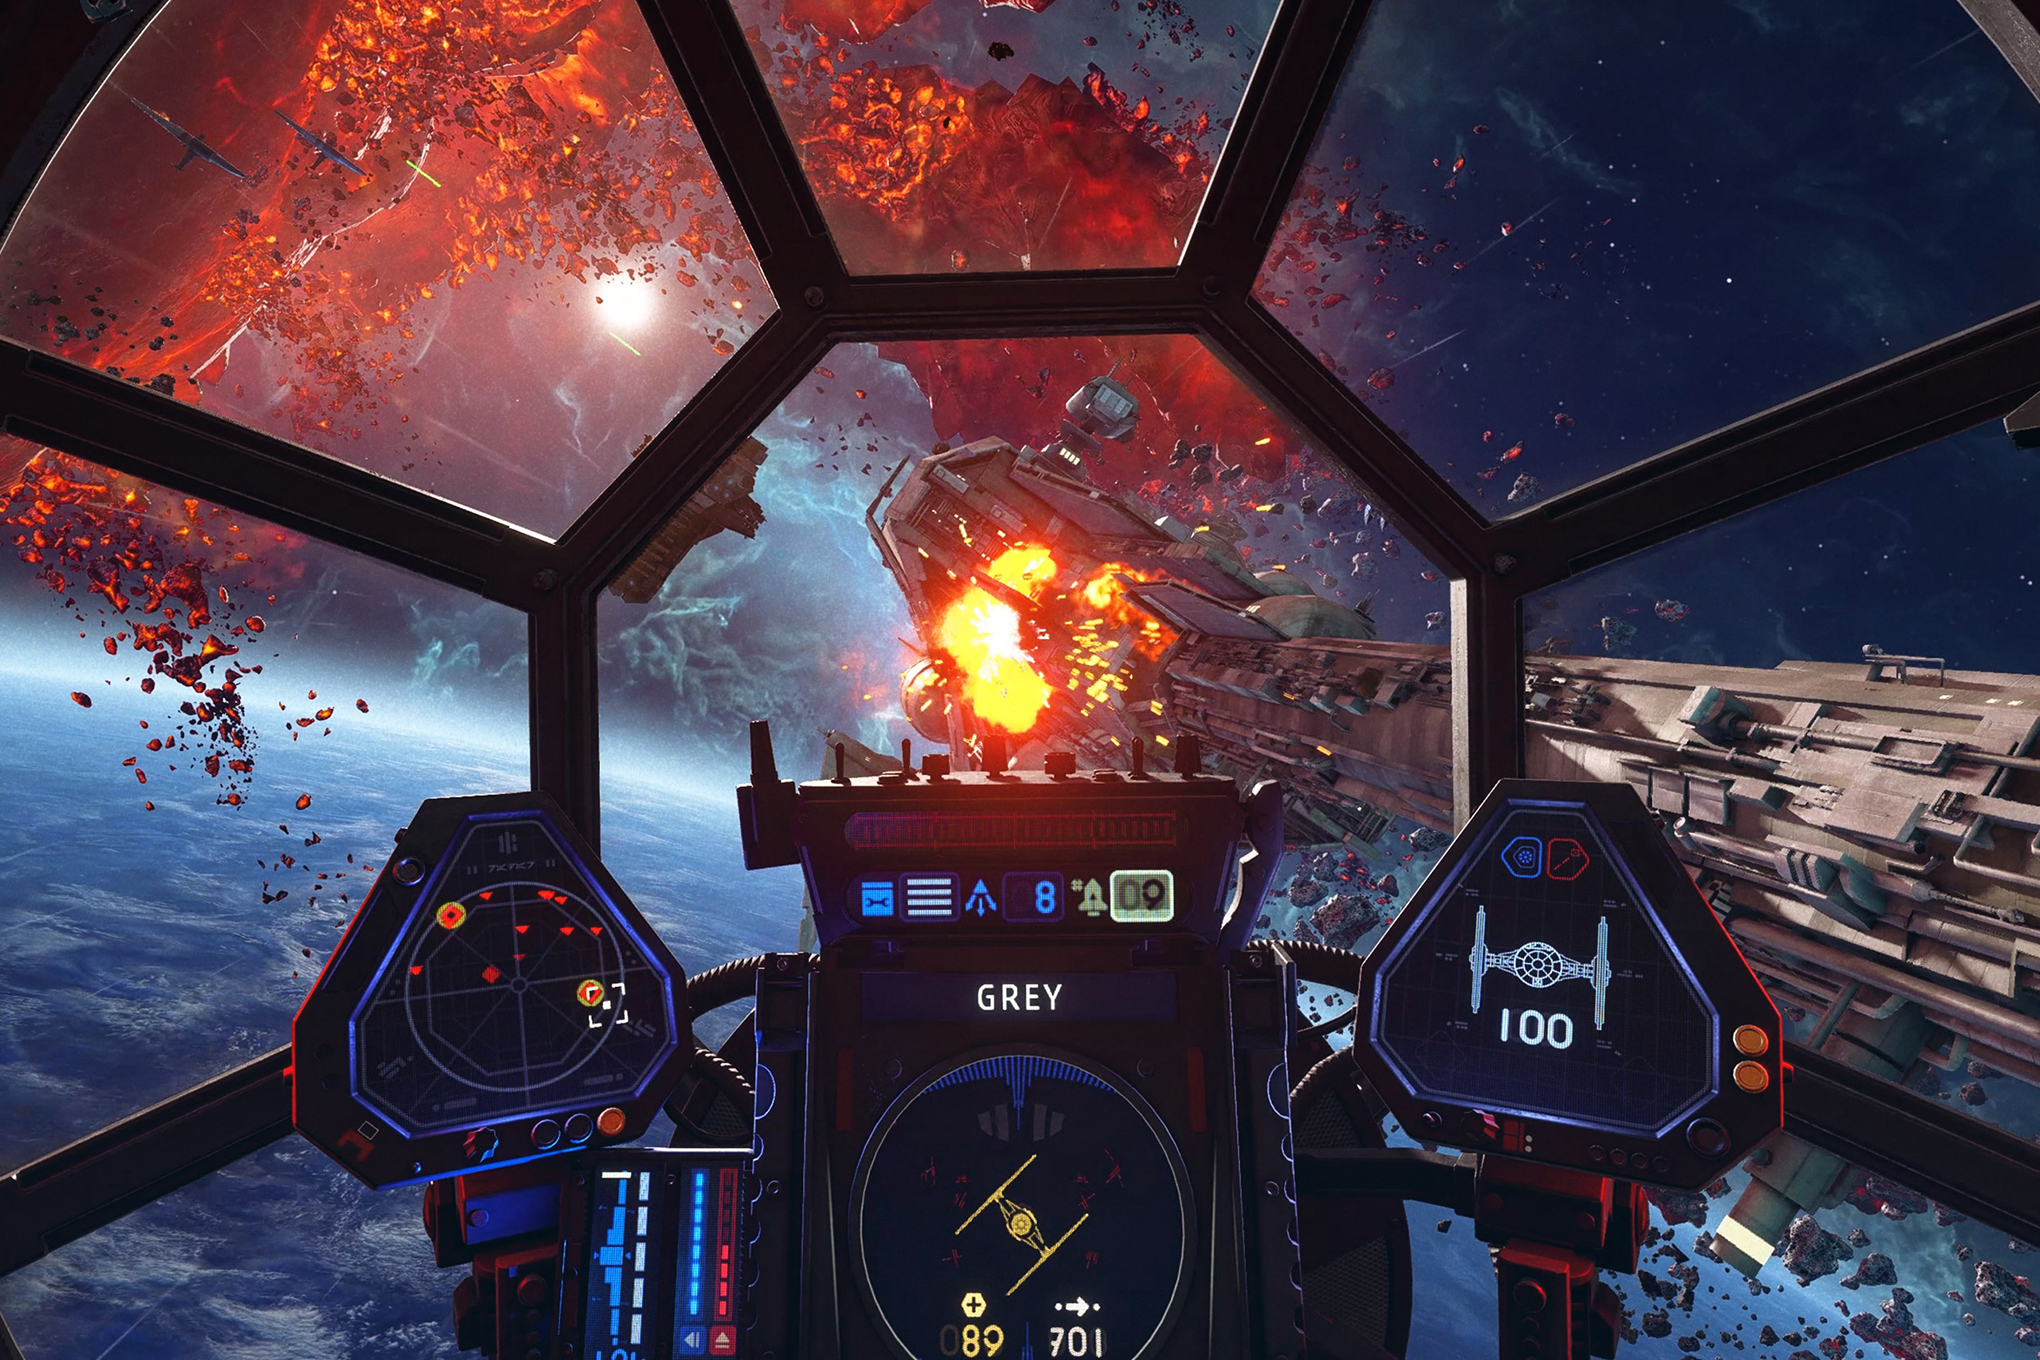 An attack run on a rebel cruiser, seen from inside the cockpit of an Imperial starship, in Star Wars: Squadrons.